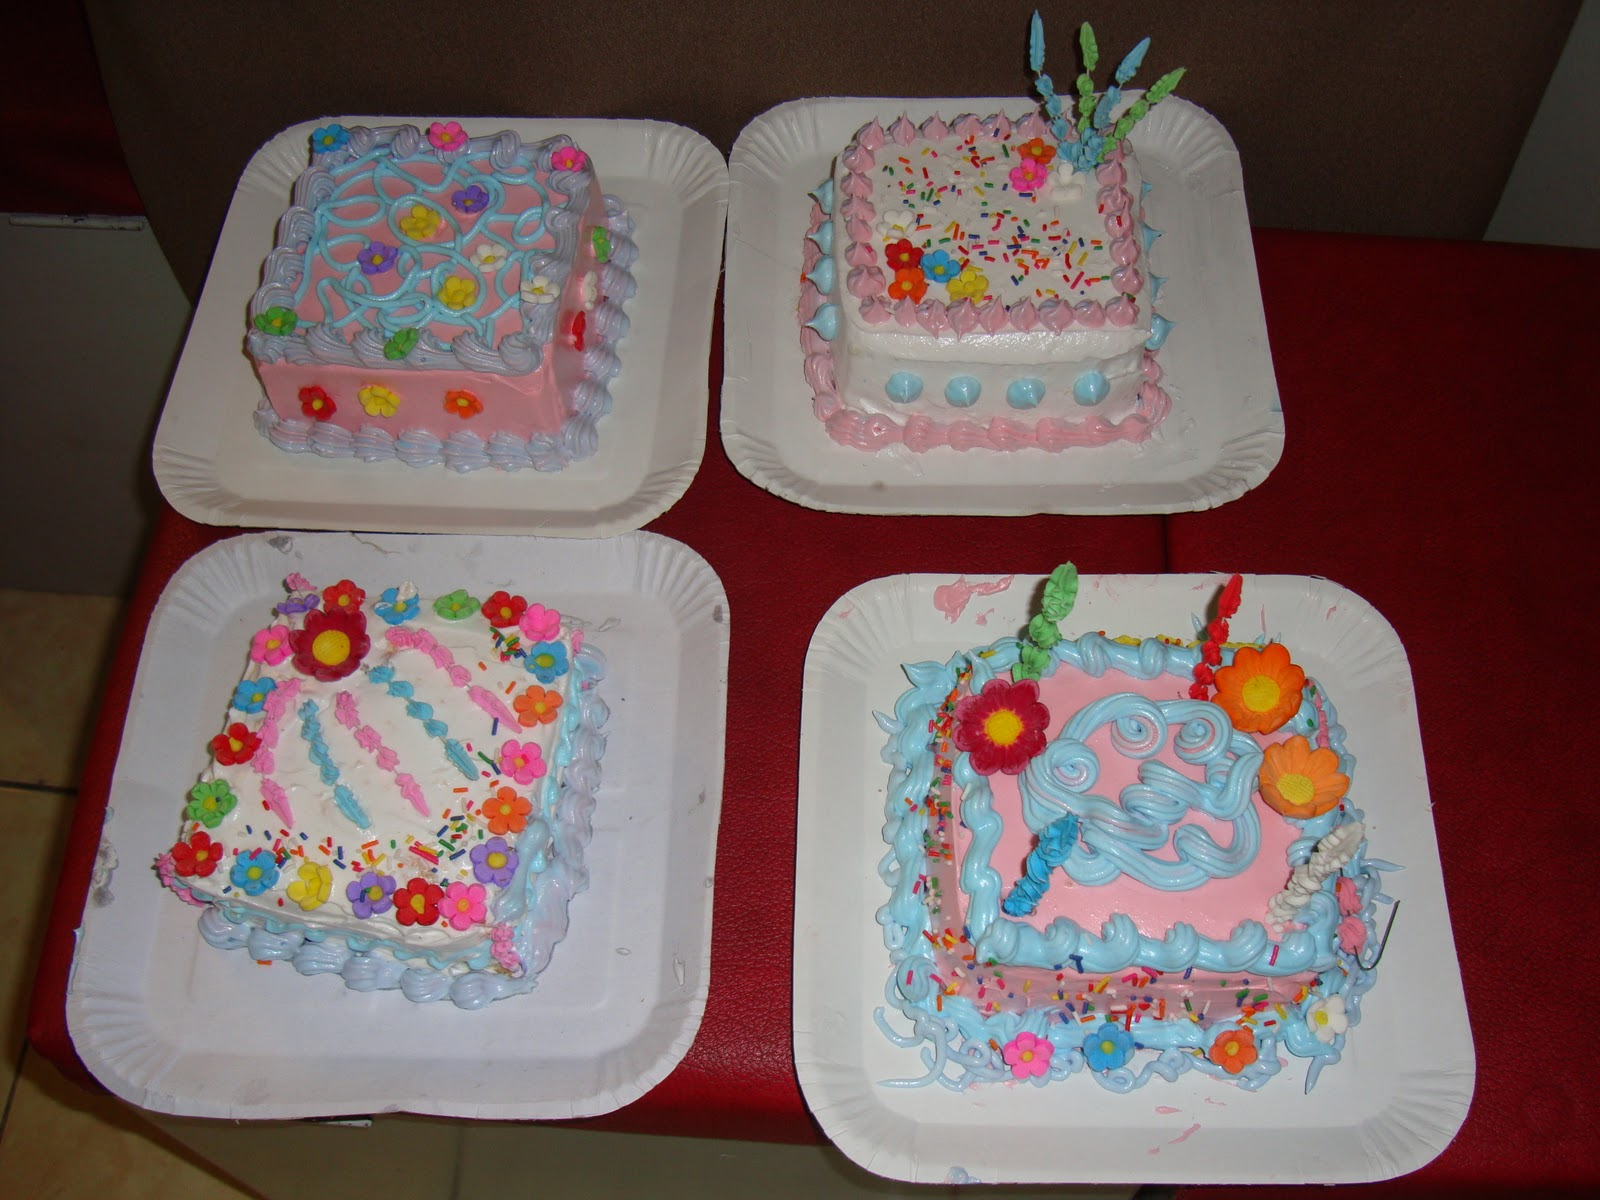 Bake And Decorate A Cake Activity